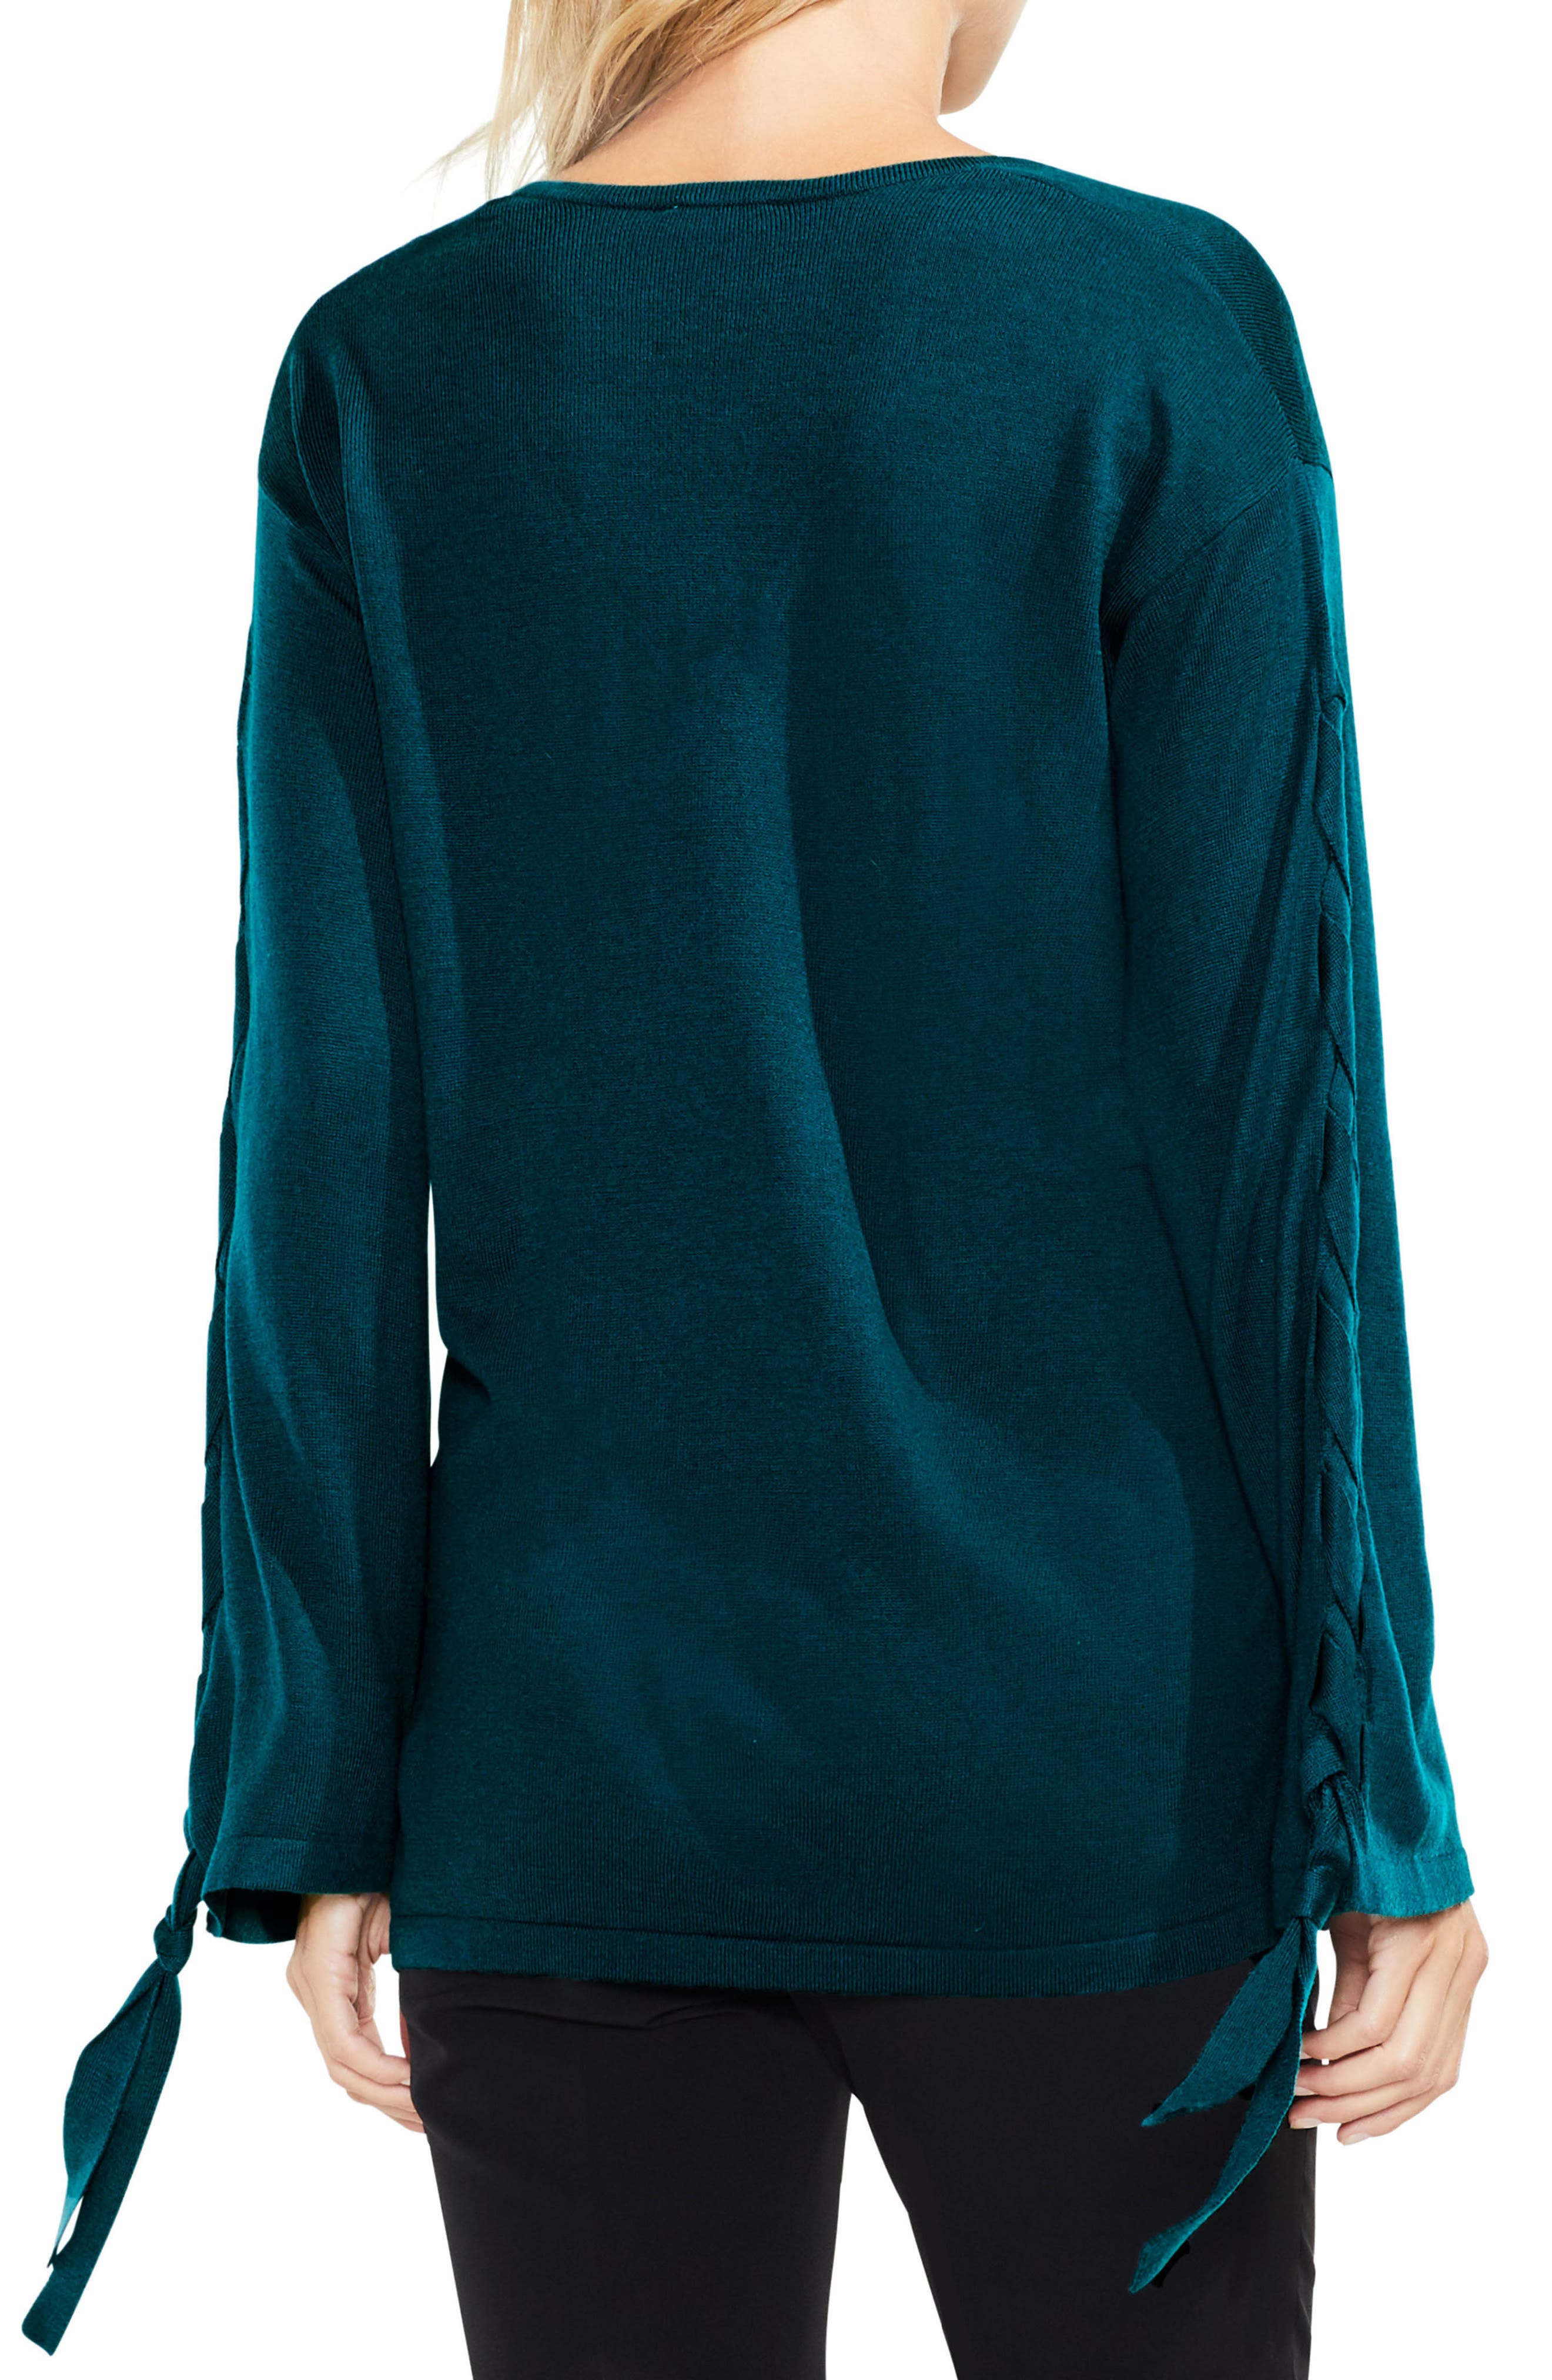 Alternate Image 3  - Vince Camuto Lace-Up Bell Sleeve Sweater (Regular & Petite)